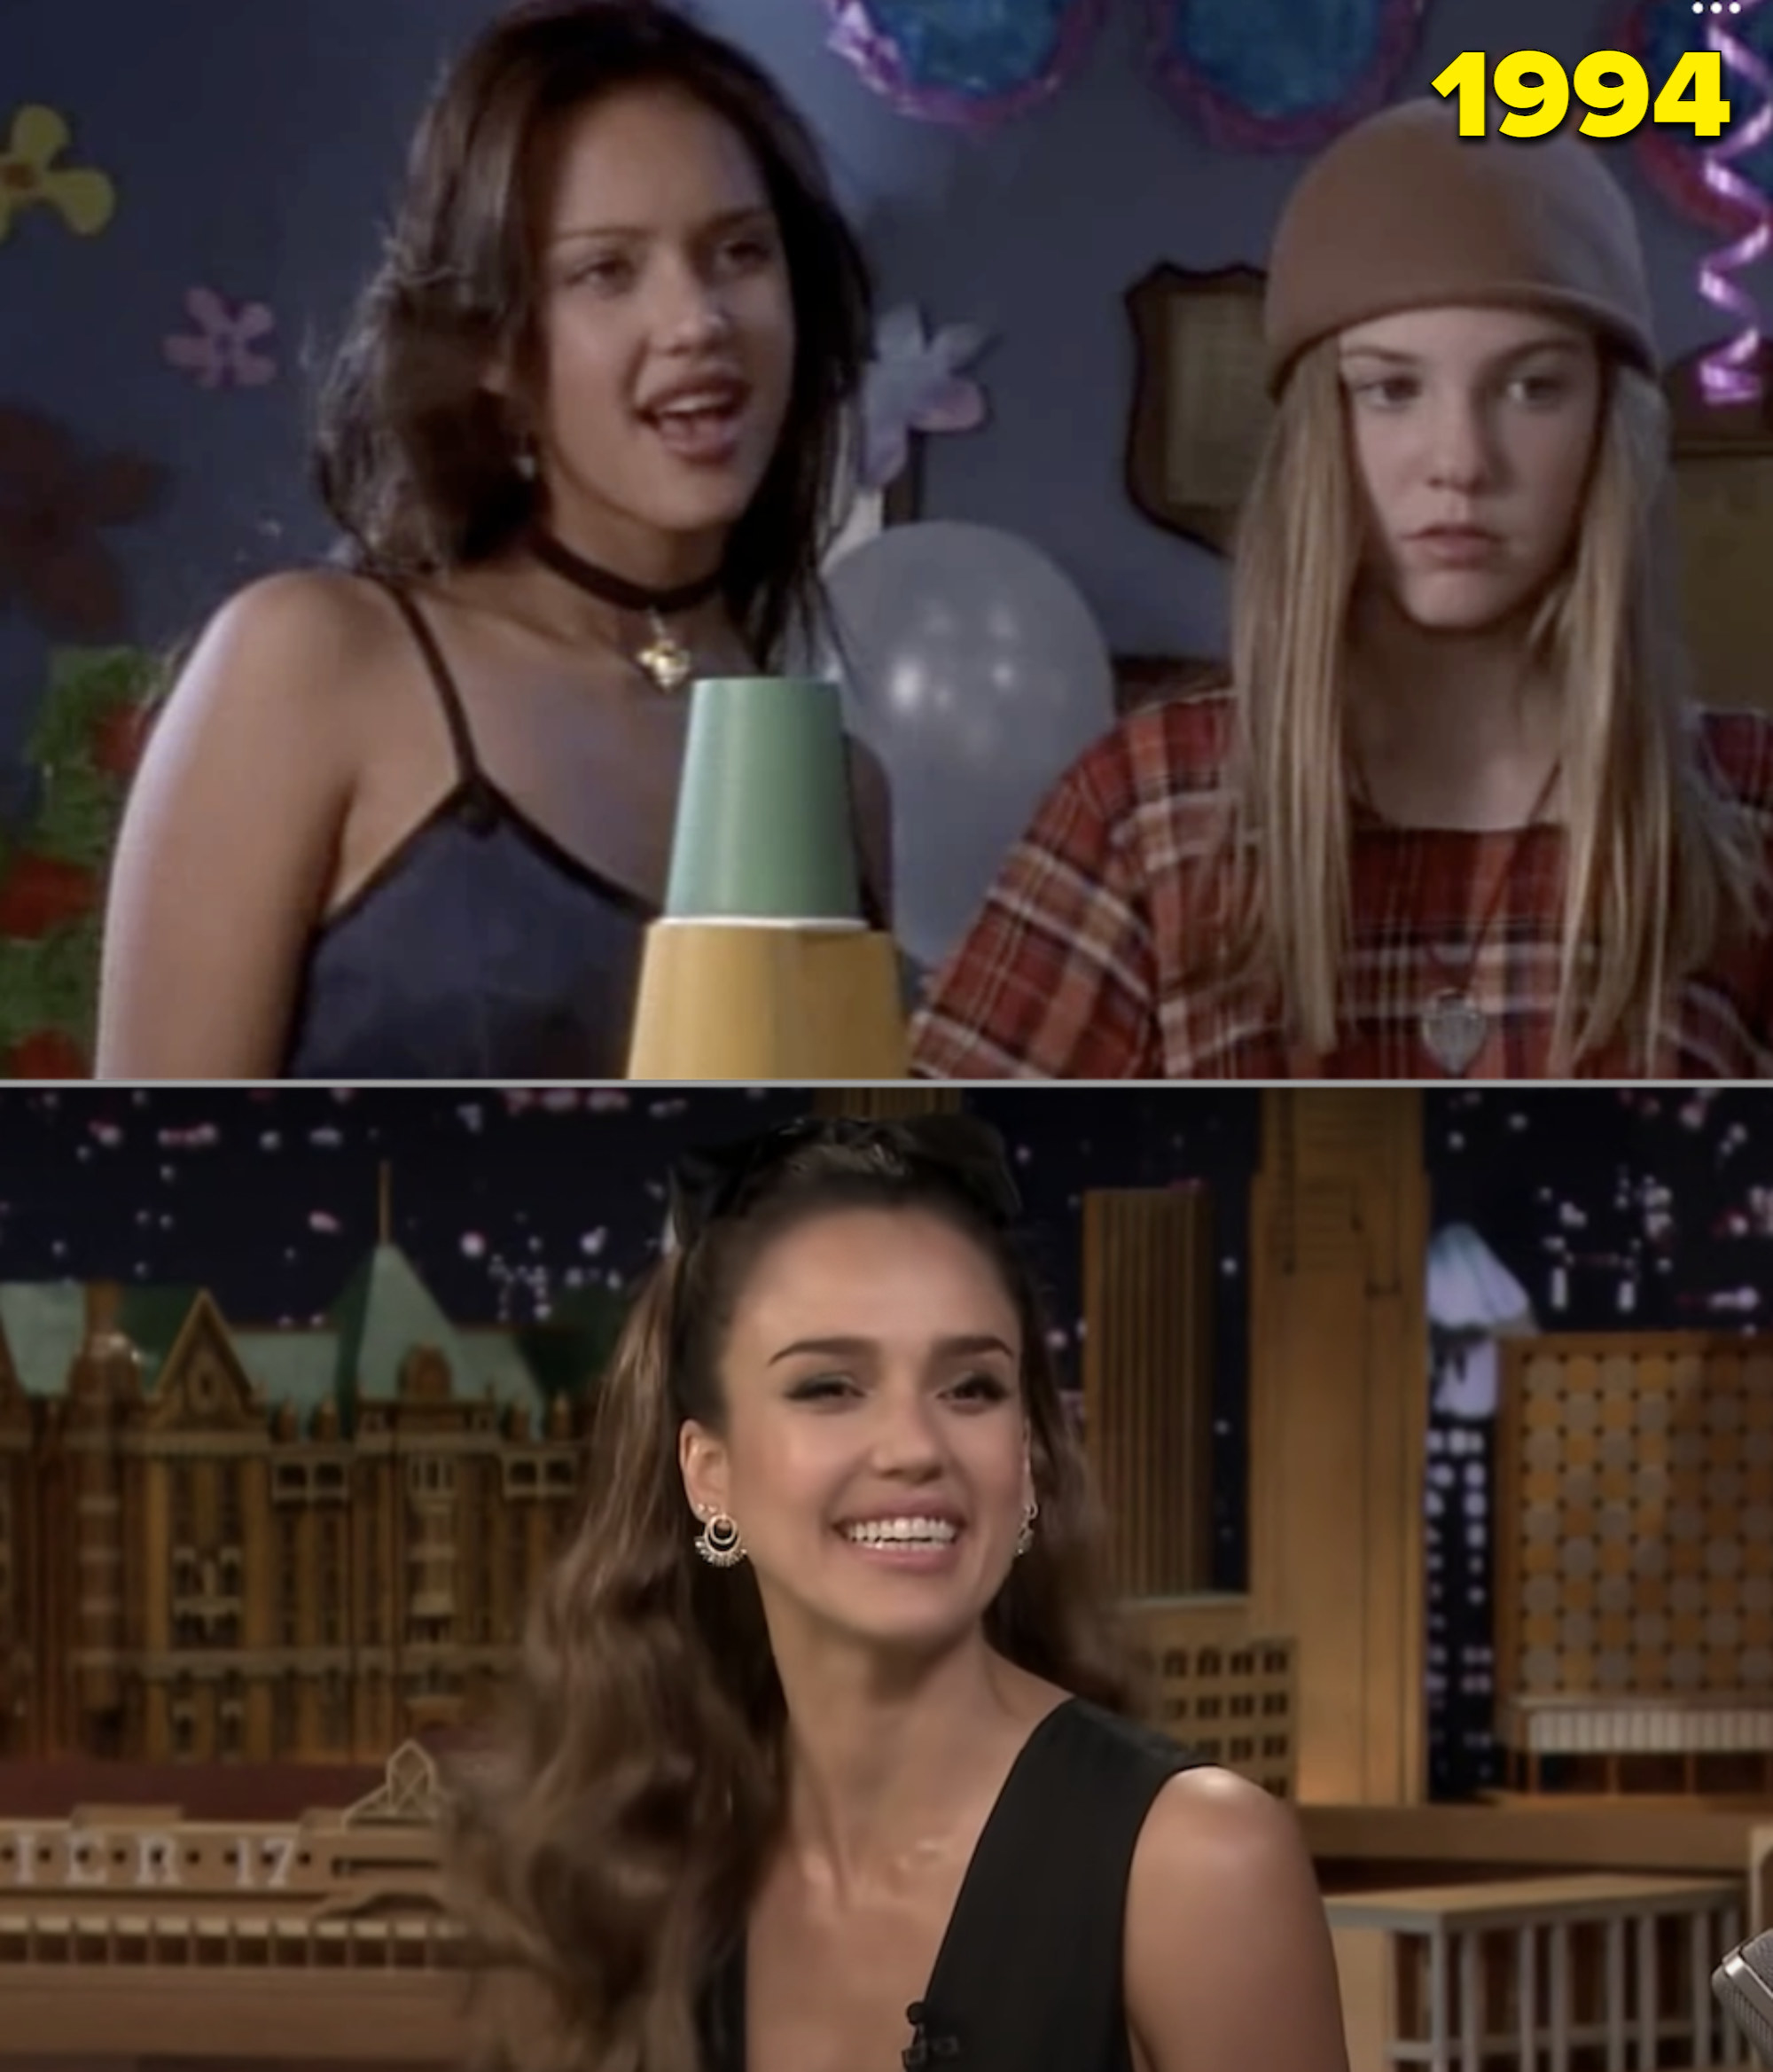 Jessica Alba on a Nickelodeon show in the early '90s vs. her on the Tonight Show in 2019